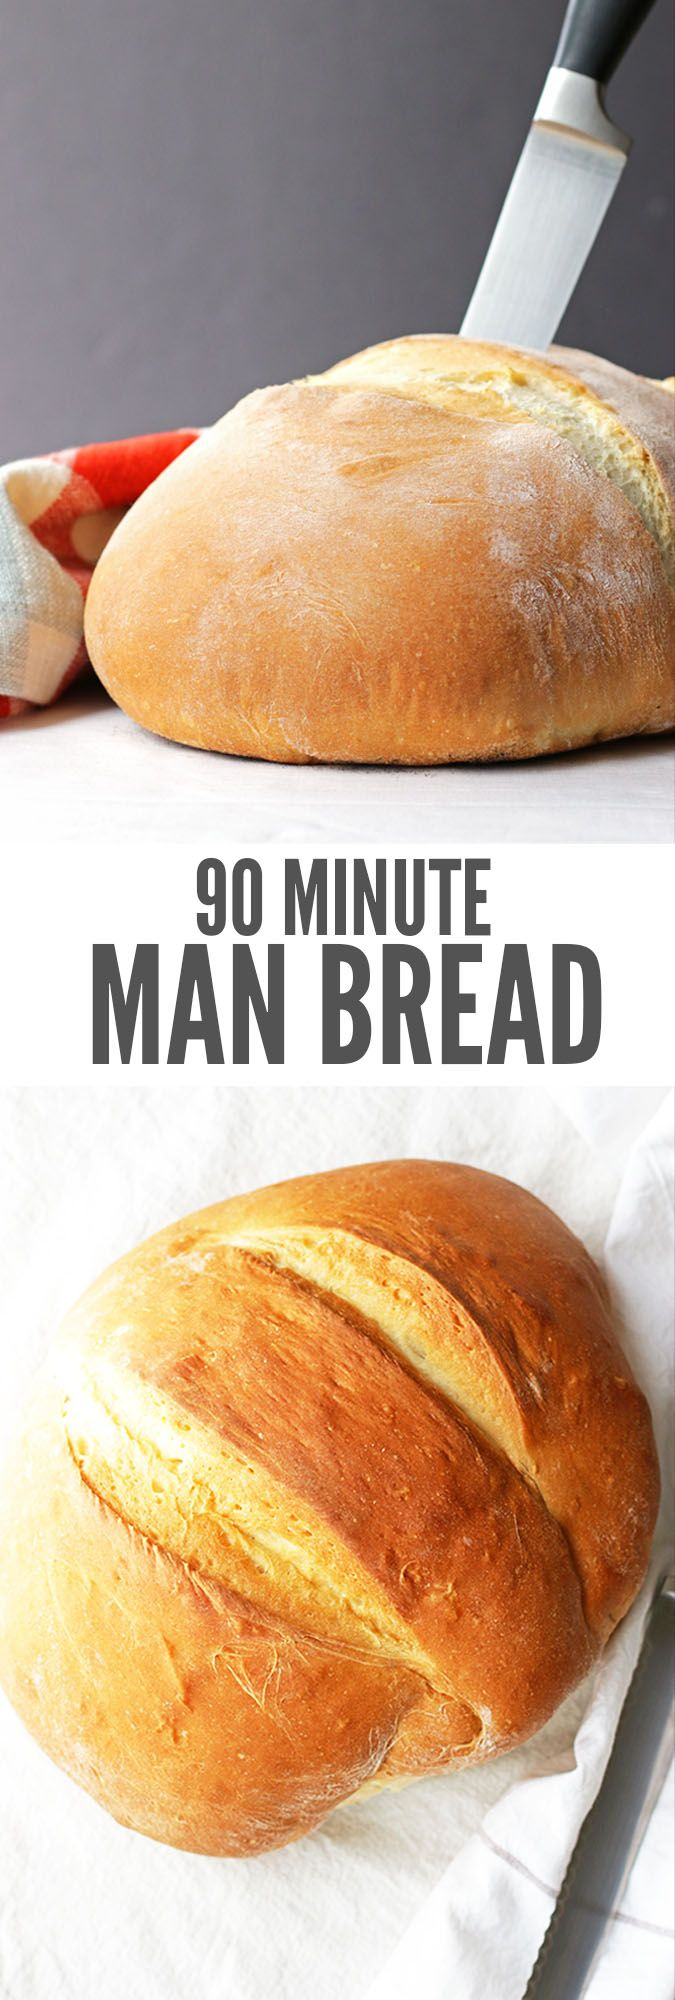 90 Minute Man Bread images